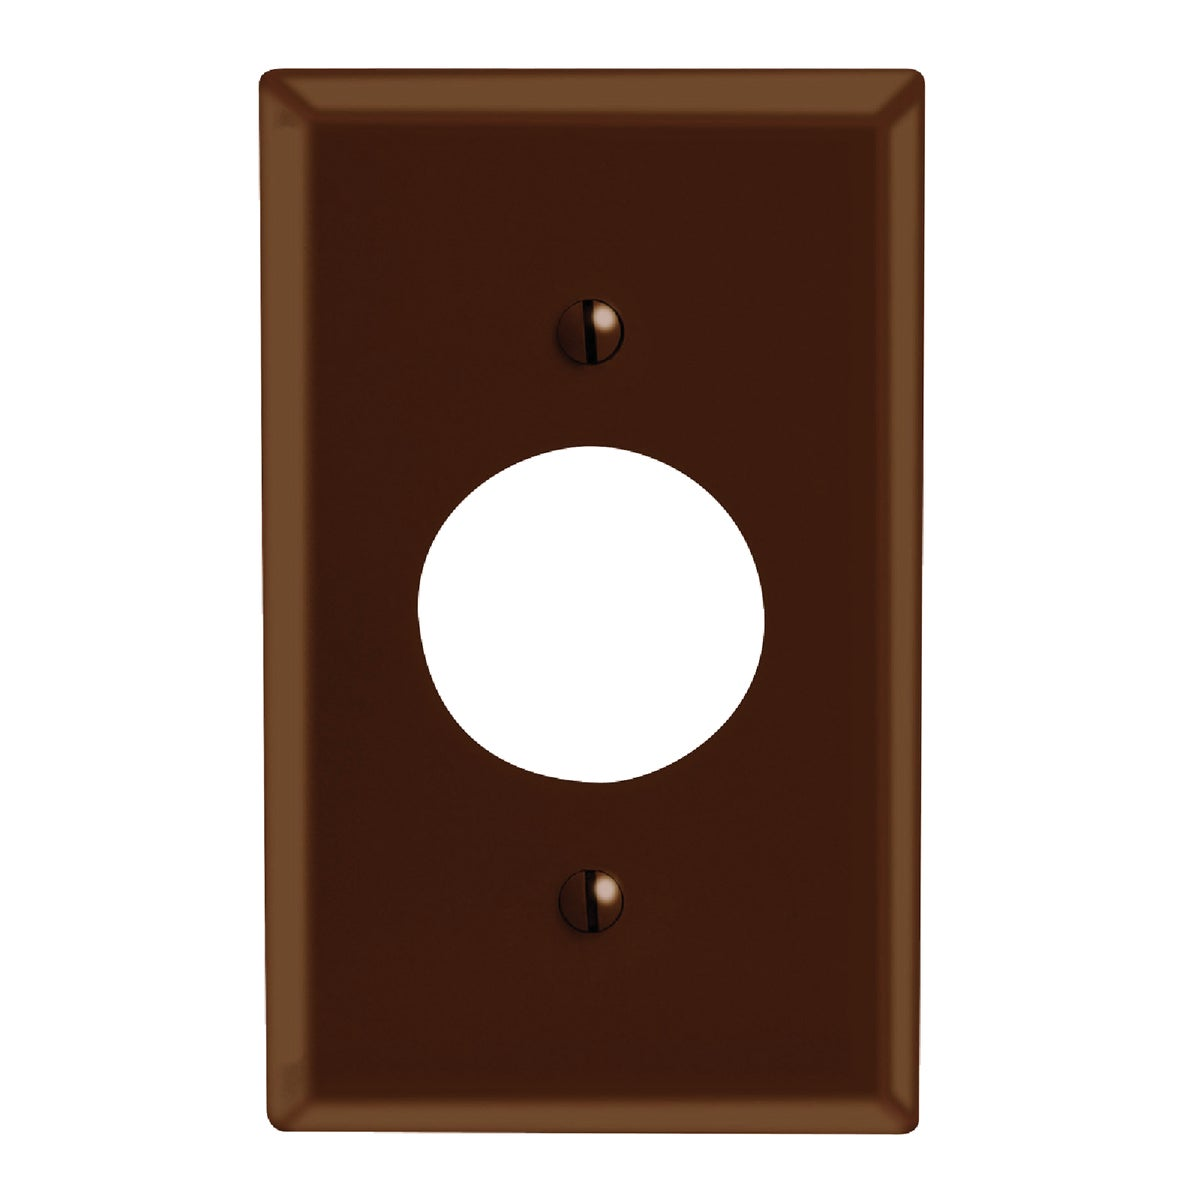 BRN 1-OUTLET WALL PLATE - 85004 by Leviton Mfg Co